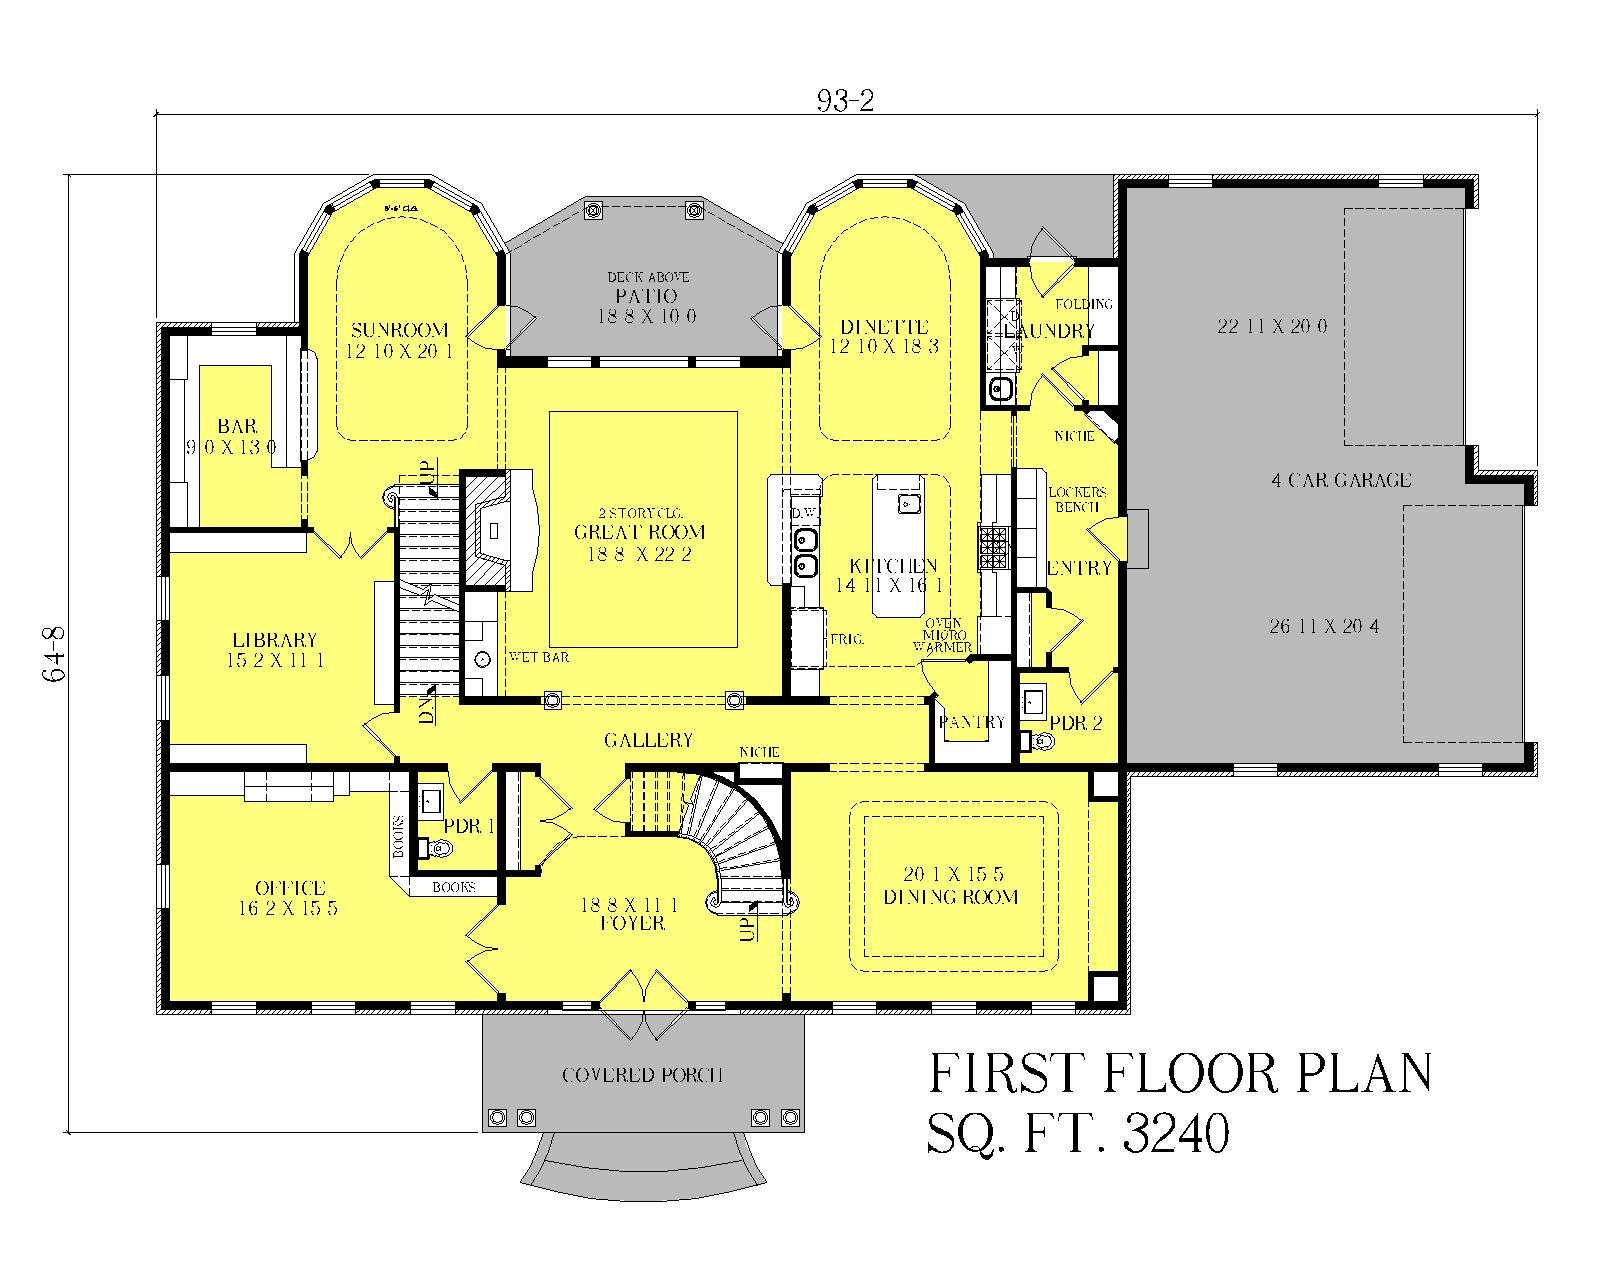 Georgian manor heislen designs Manor house floor plan